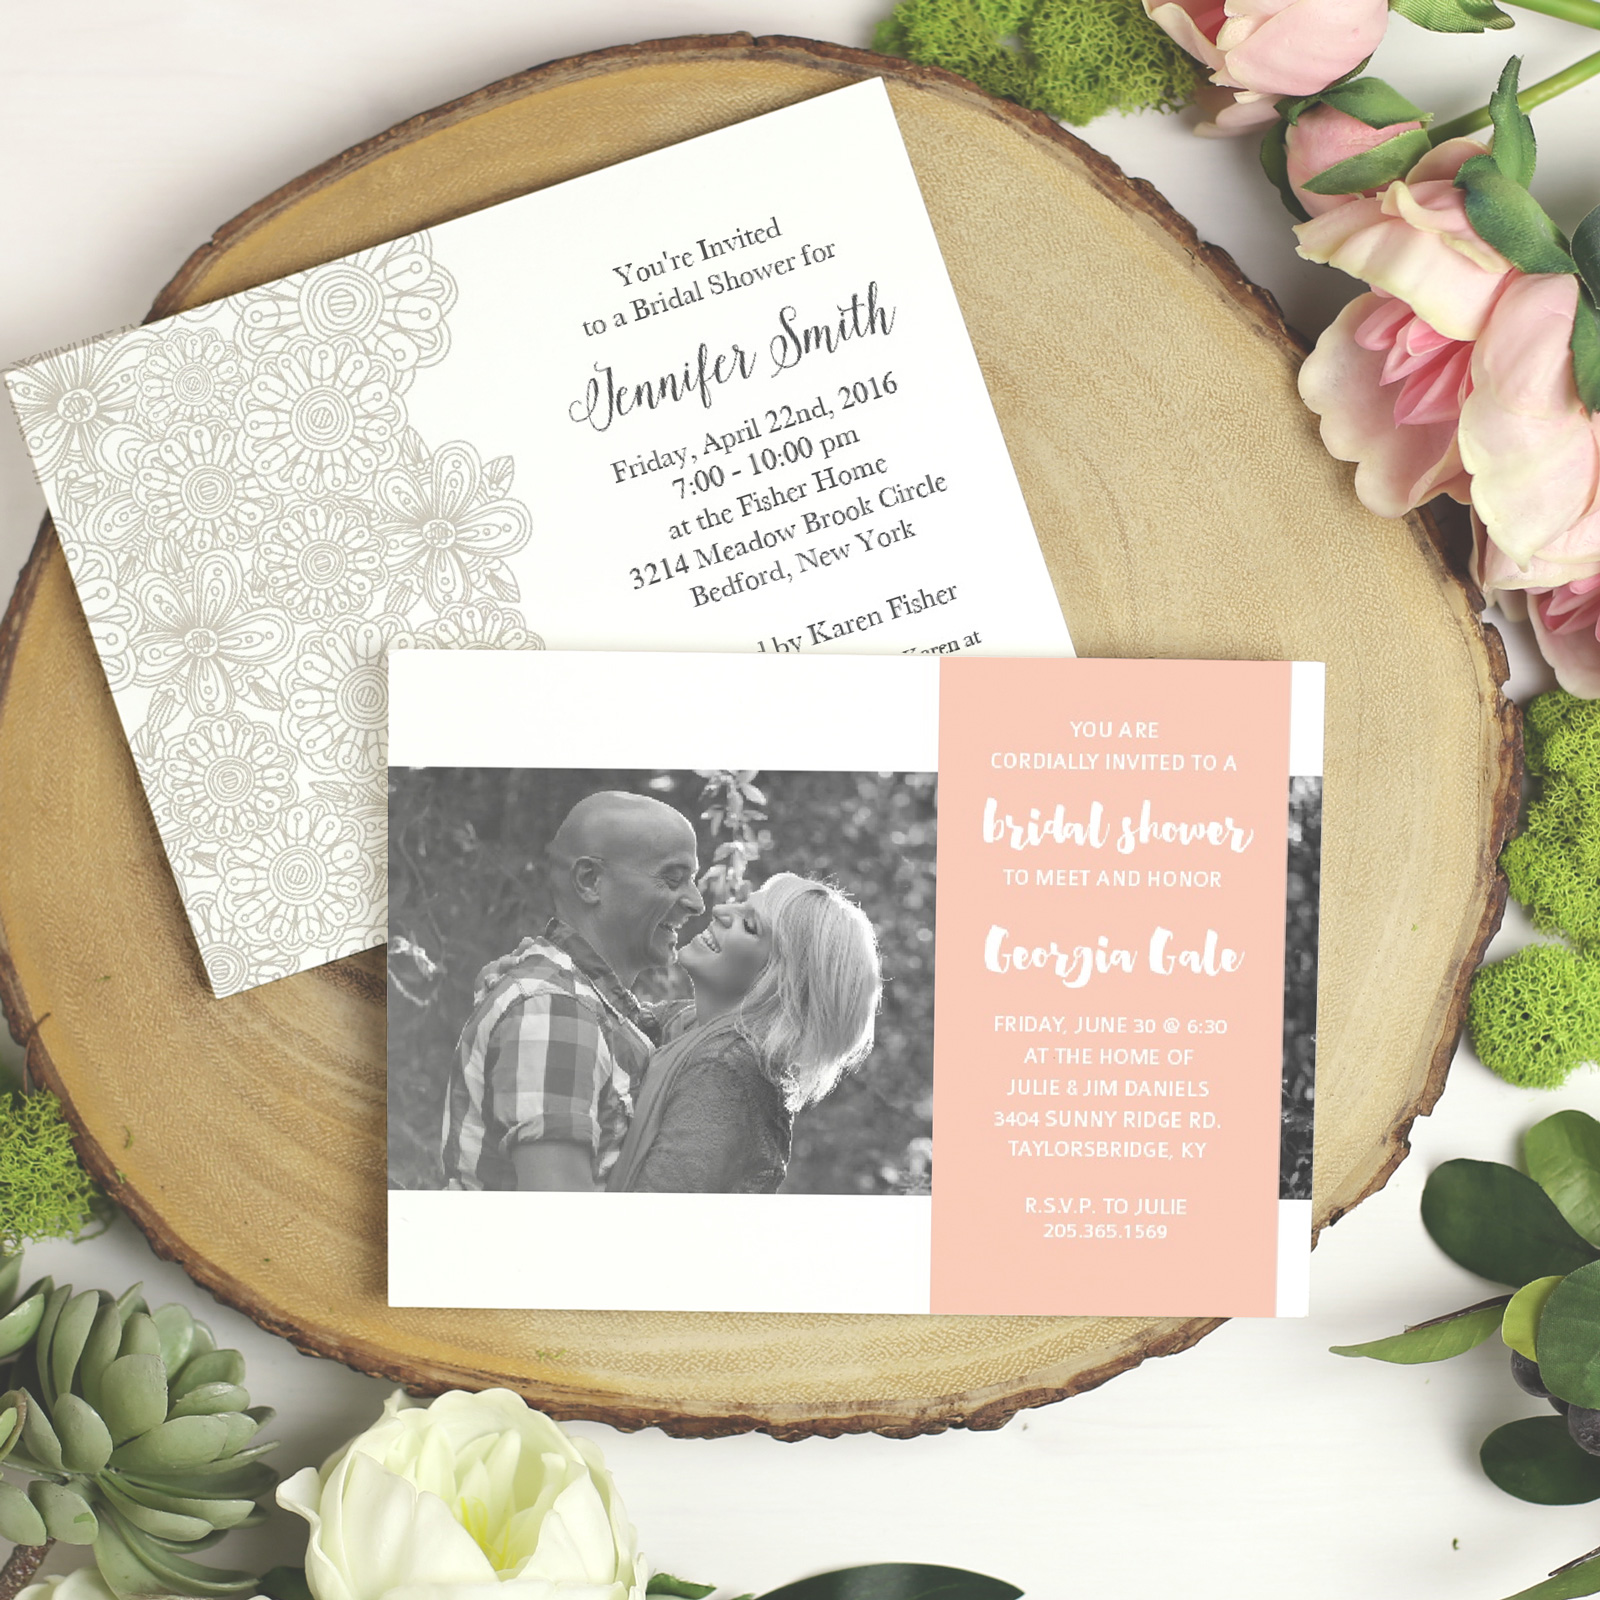 Invitation Card Edit Online Most Stylish Wedding Invitation Cards To Buy- Best Designs